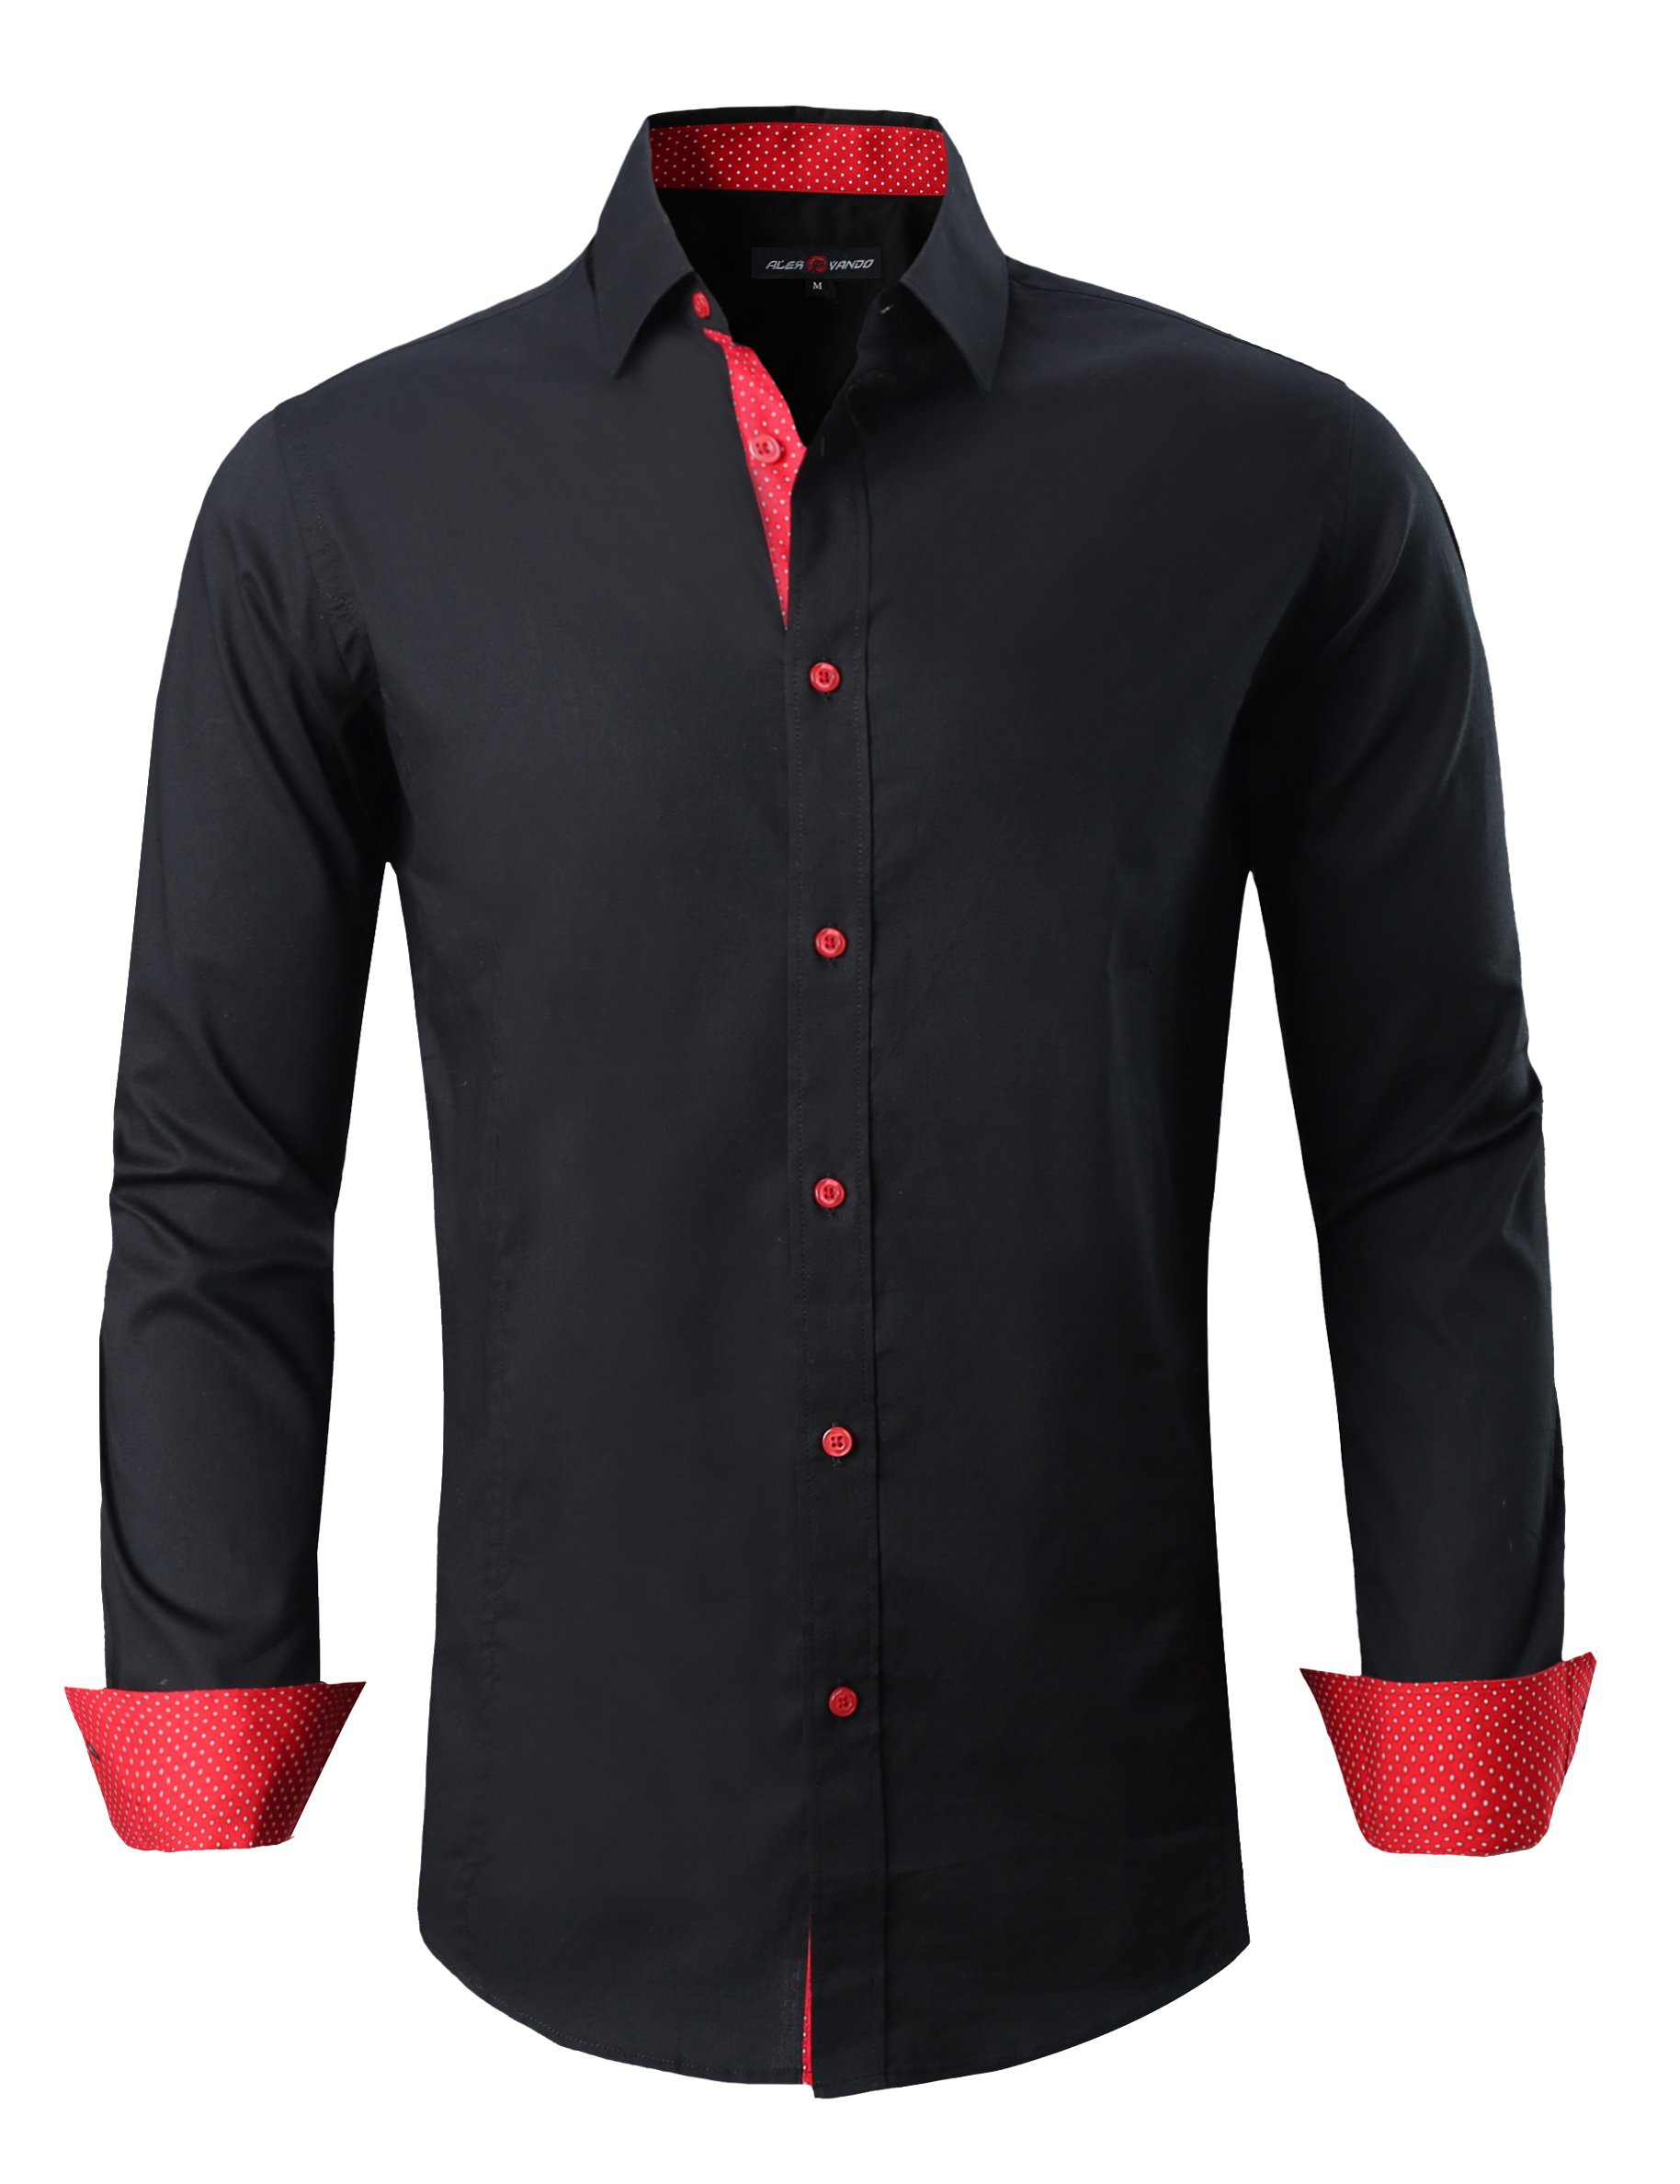 Joey CV Mens Casual Button Down Shirts Long Sleeve Regular Fit(Black,Medium)